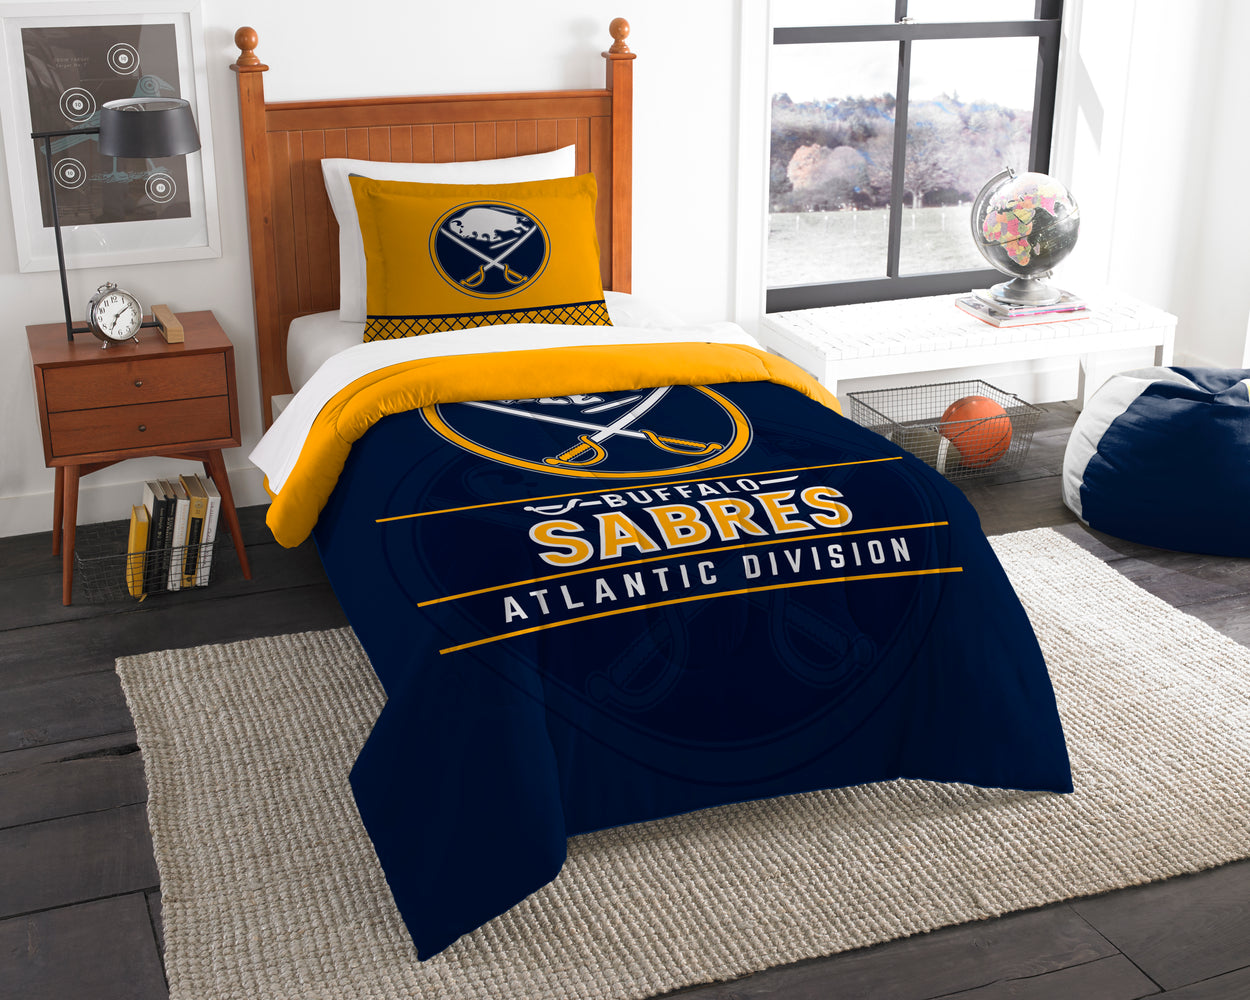 "Sabres OFFICIAL National Hockey League, Bedding, """"Draft"""" Twin Printed Comforter (64""""x 86"""") & 1 Sham (24""""x 30"""") Set  by The Northwest Company"